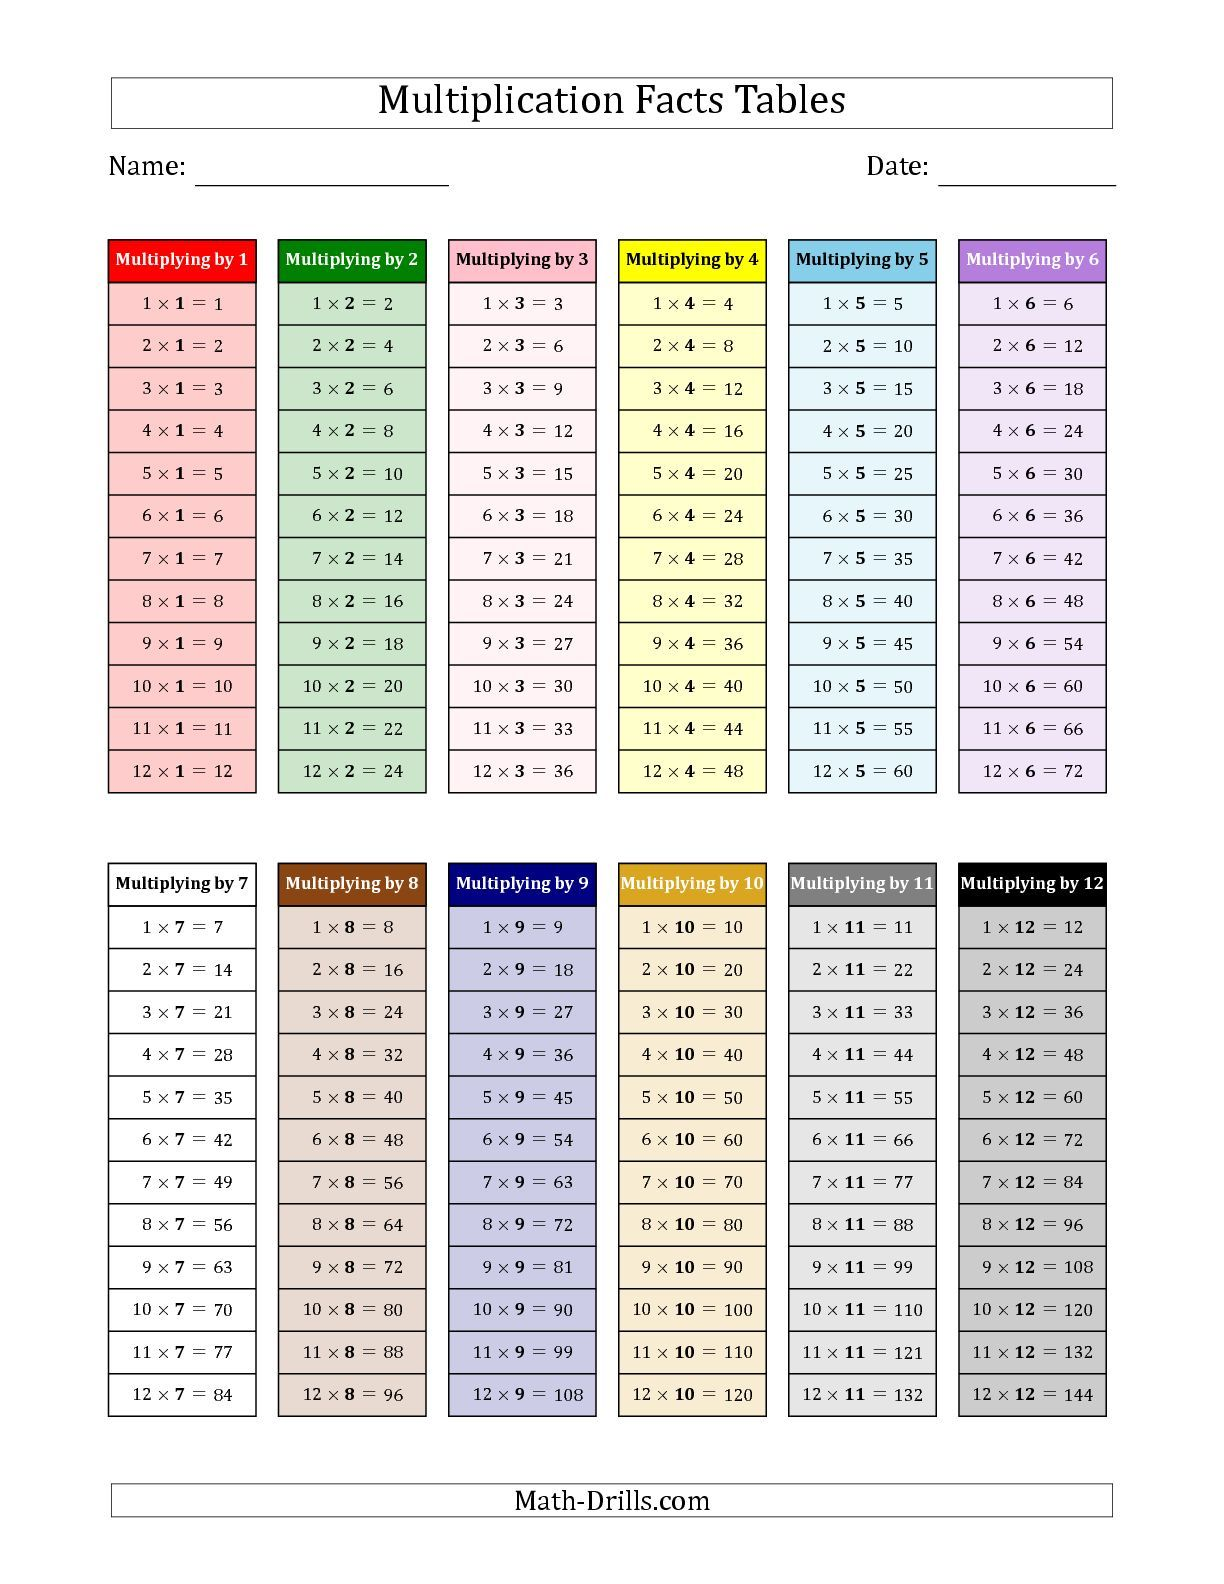 worksheet 60 Multiplication Facts the multiplication facts tables in montessori colors 1 to 12 math worksheet from worksheet